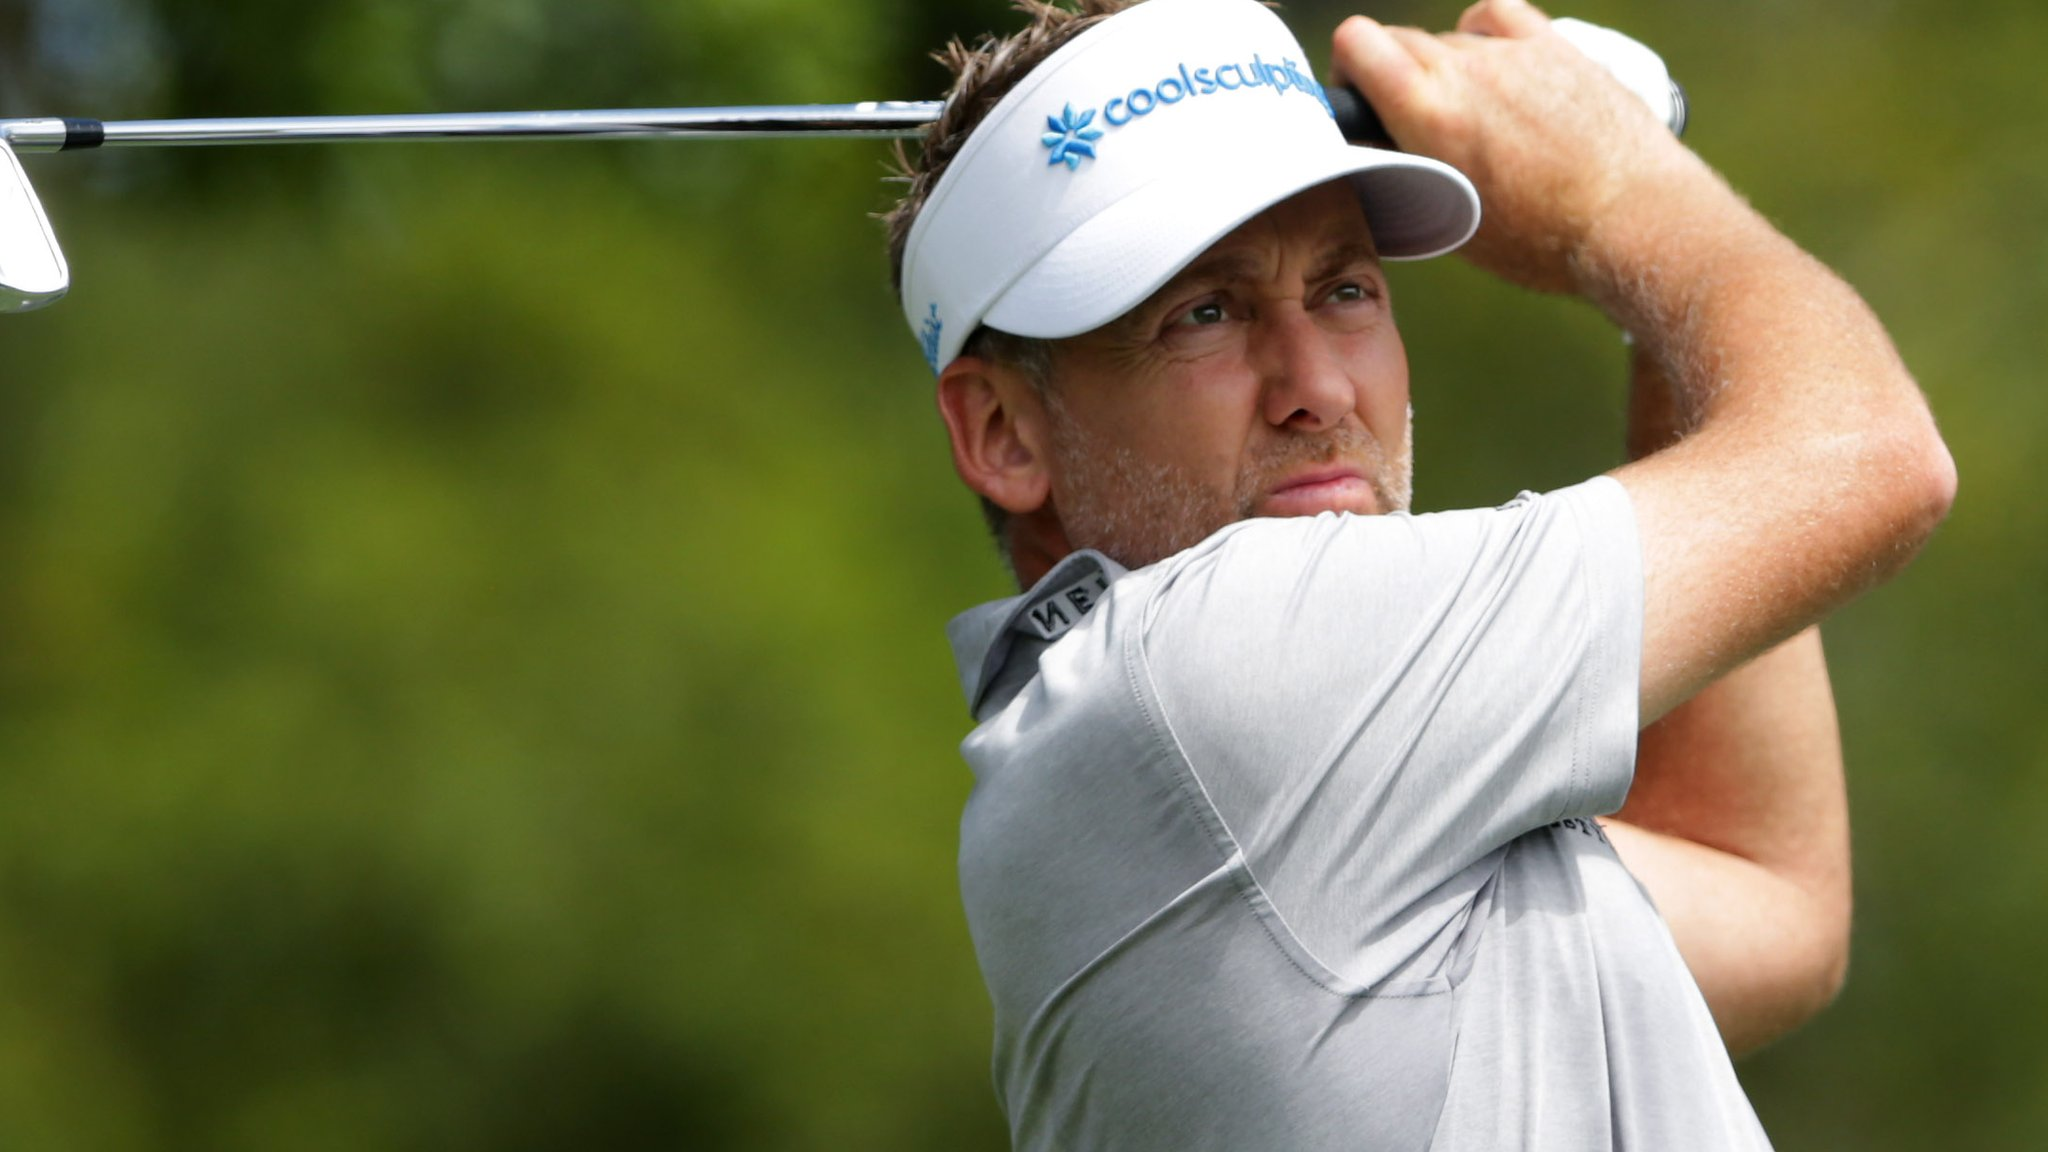 Irish Open: Ryder Cup star Ian Poulter to compete at Lahinch